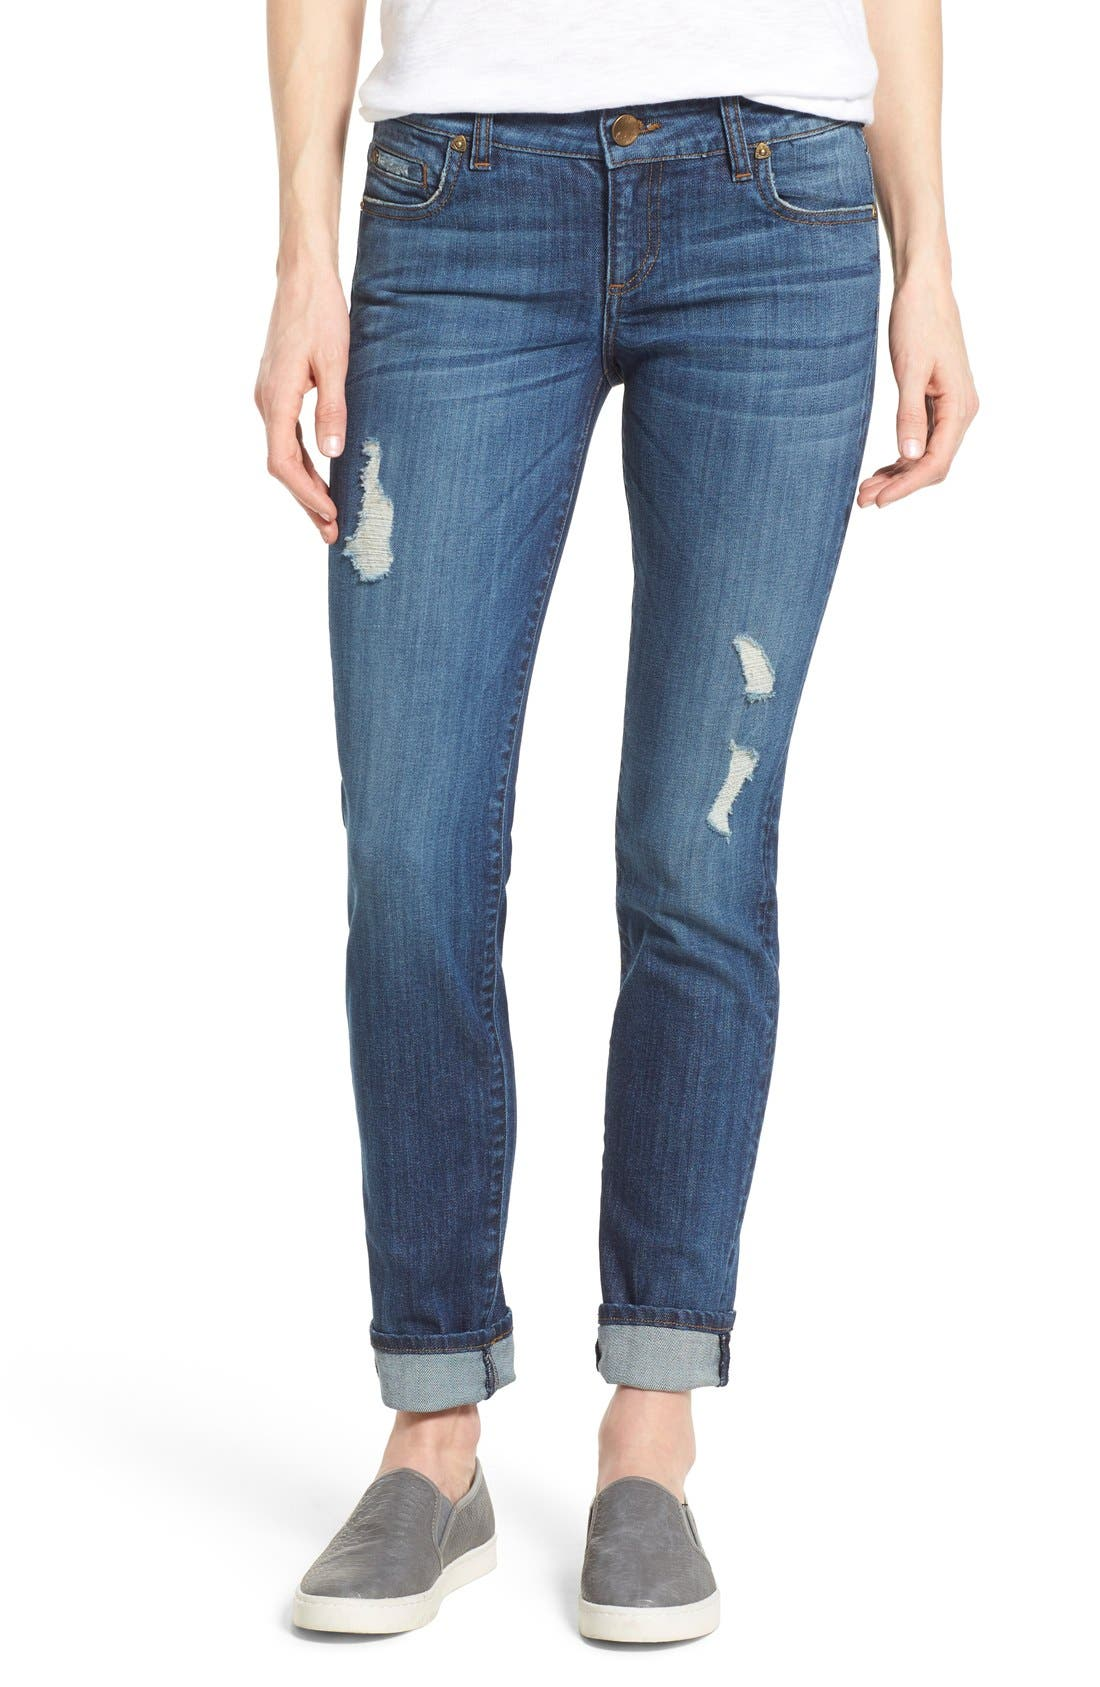 Main Image - KUT from the Kloth 'Catherine' Distressed Stretch Boyfriend Jeans (Yearn) (Regular & Petite)